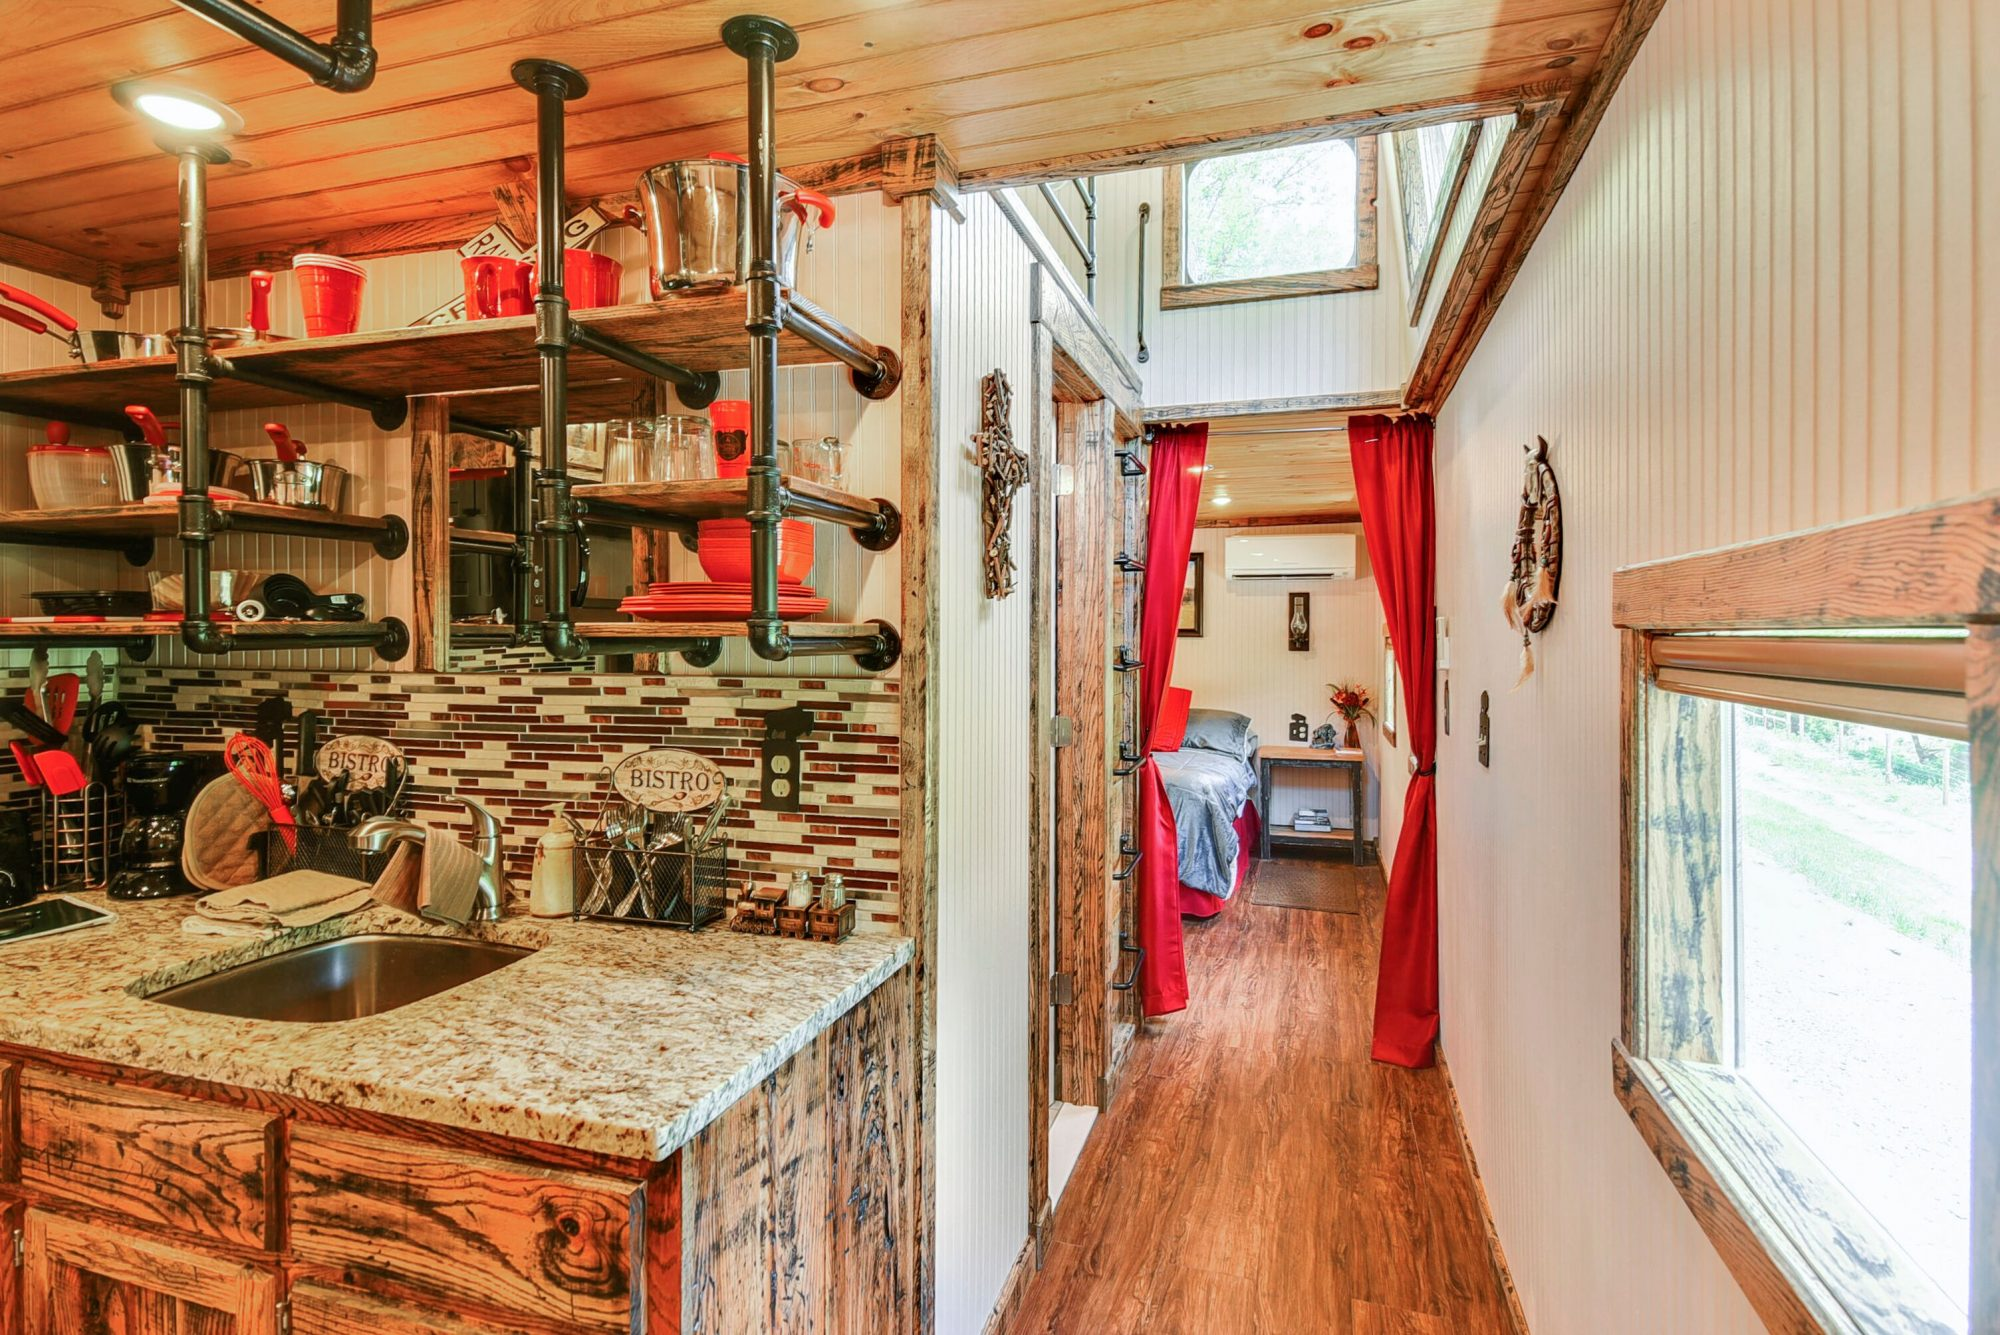 You've Got to Stay in These Train Caboose Vacation Rentals in Clyde, North Carolina